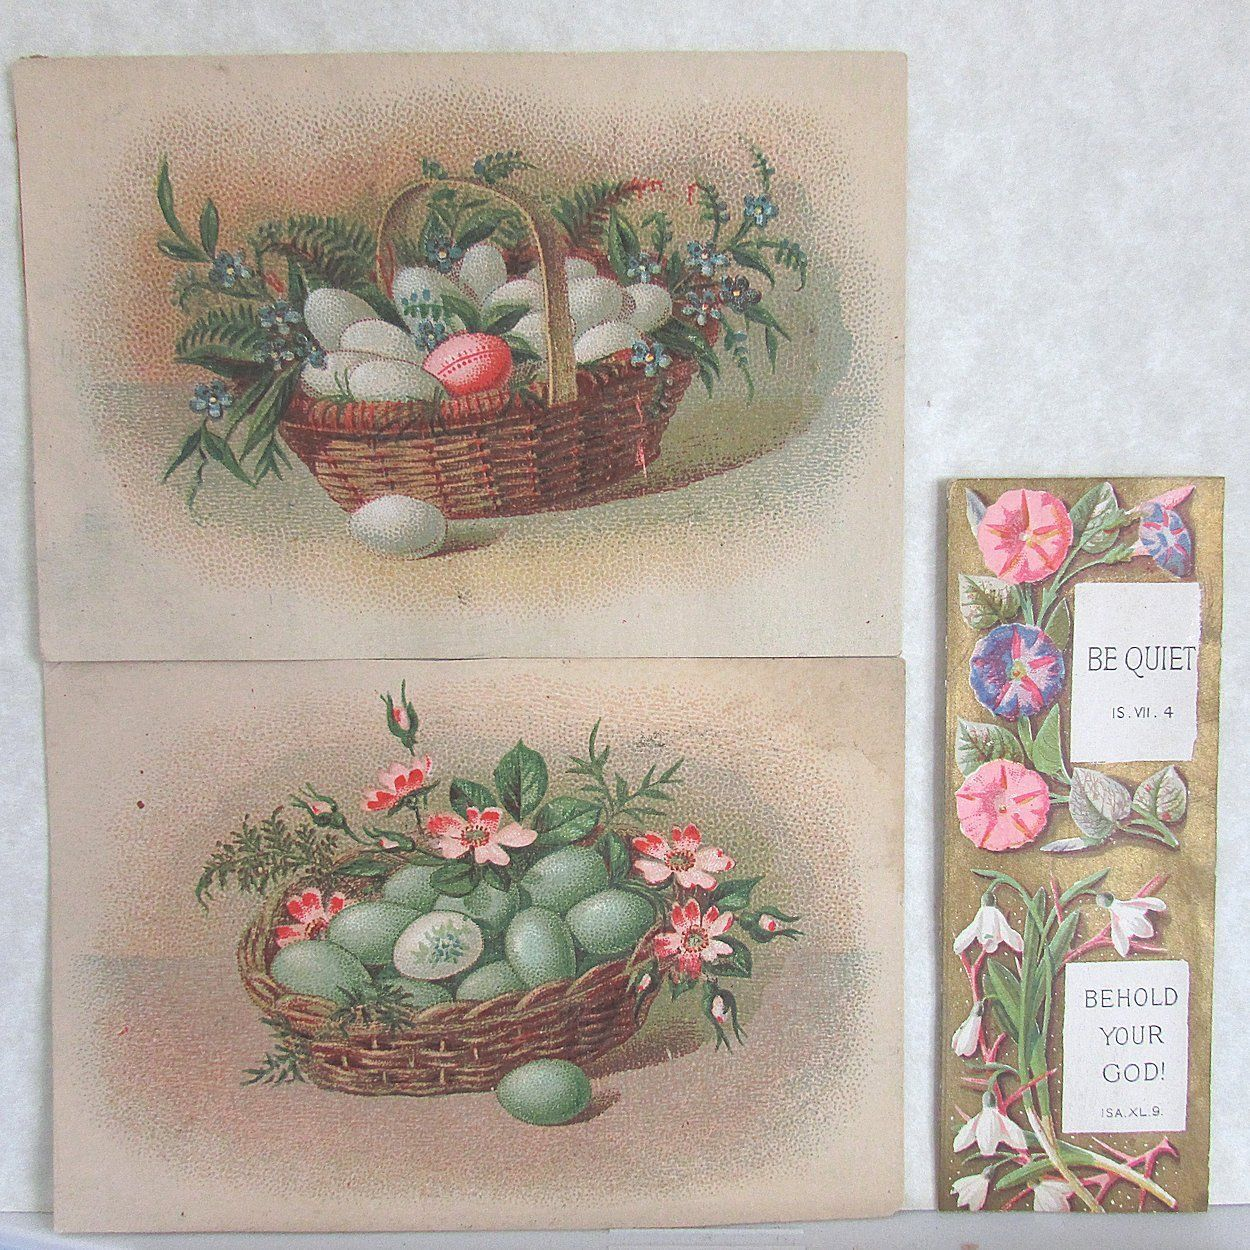 12 victorian greeting cards bible religious sayings quotes flower 12 victorian greeting cards bible religious sayings quotes flower children ebay m4hsunfo